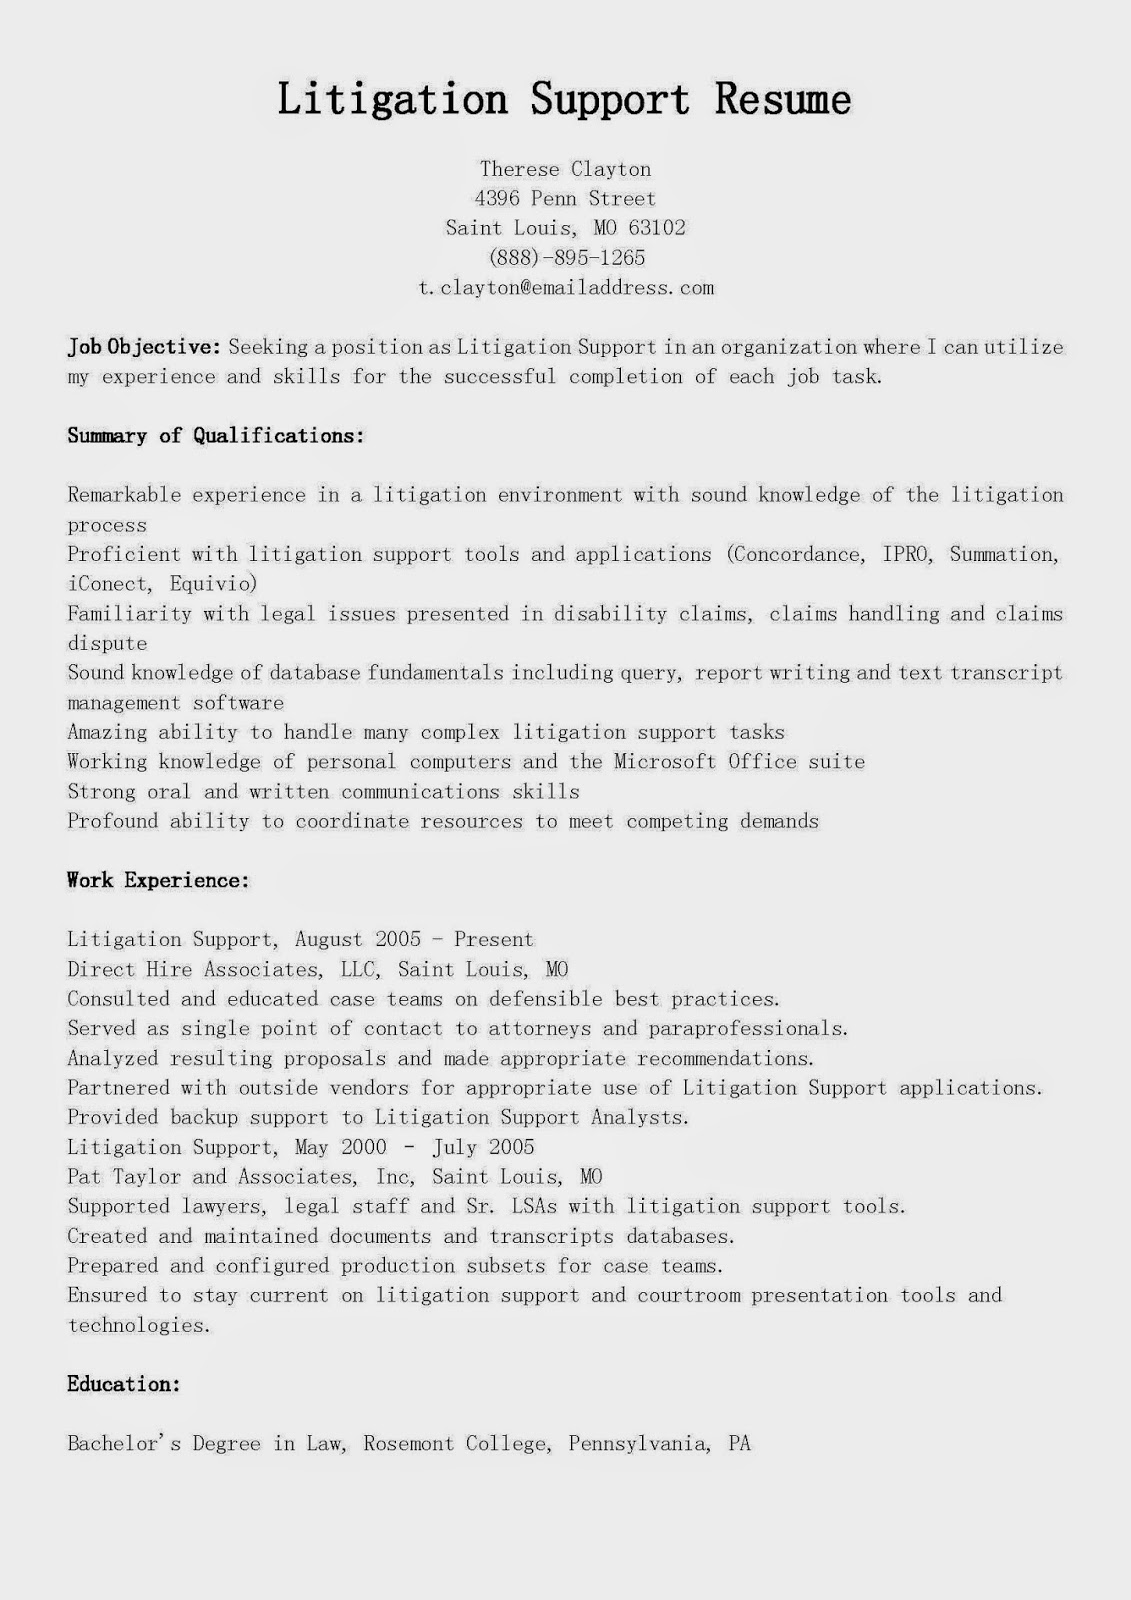 resume samples  litigation support resume sample